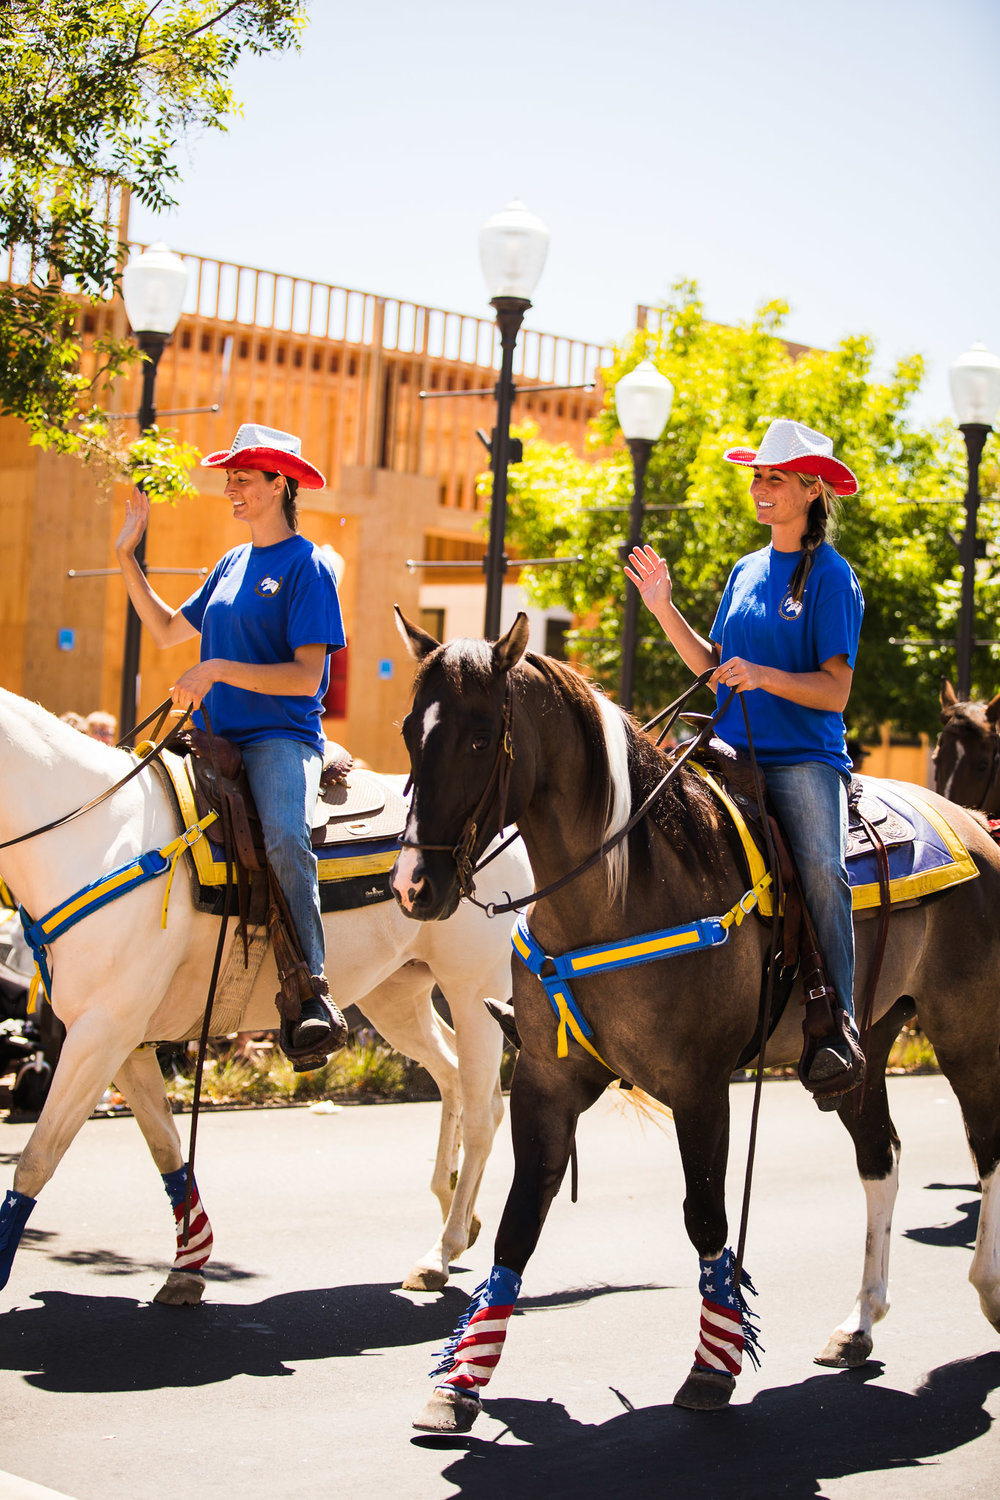 Archer_Inspired_Photography_Morgan_Hill_California_4th_of_july_parade-159.jpg